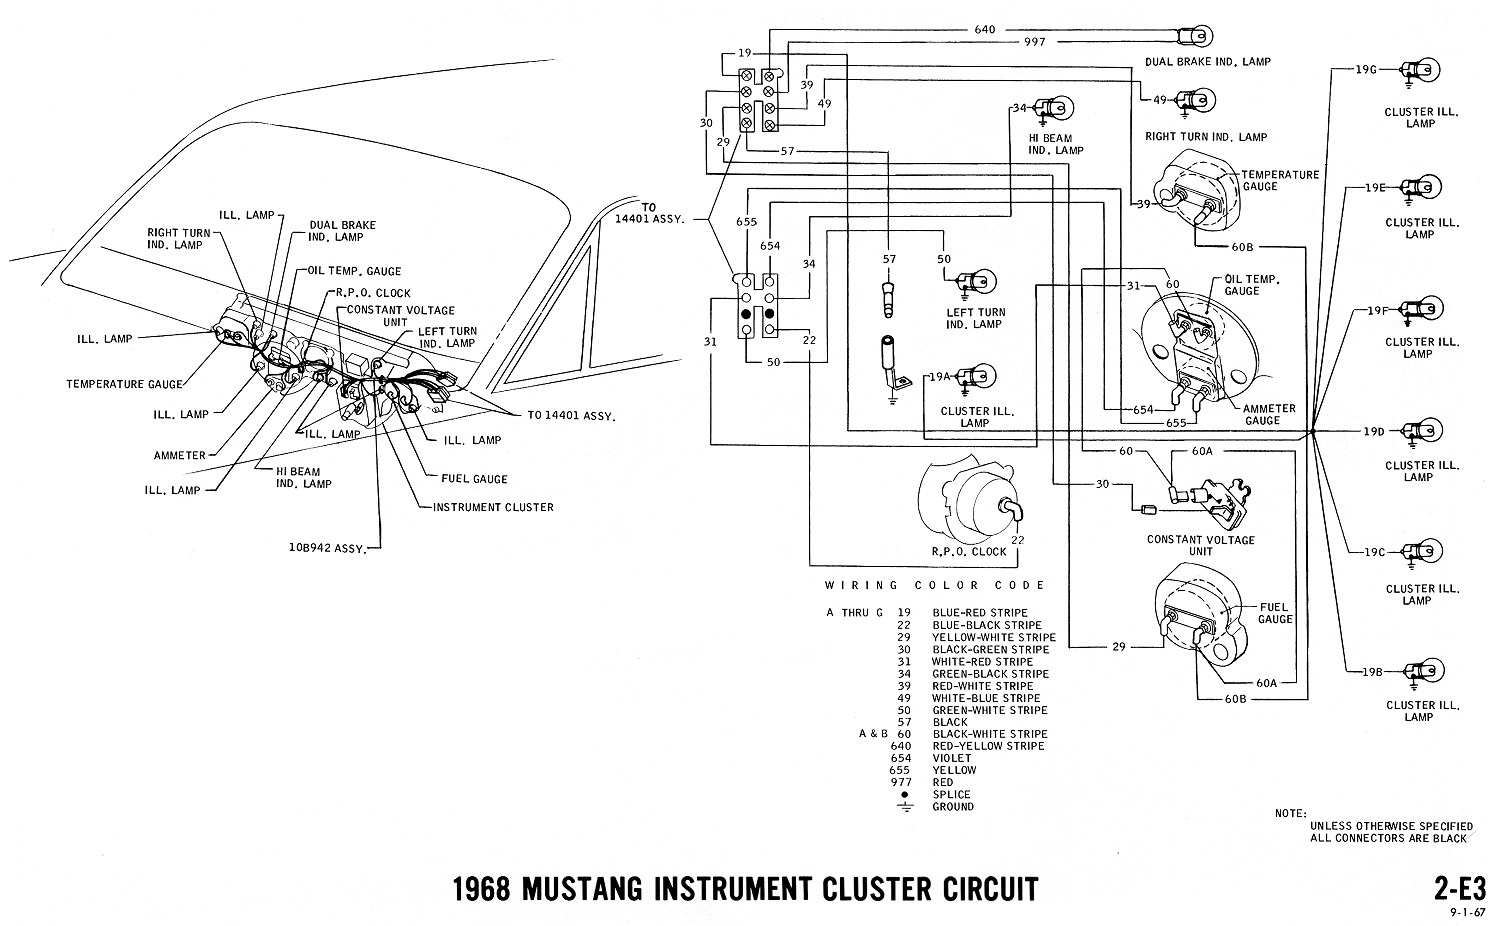 1968 mustang wiring diagram instruments 1965 mustang wiring diagram 1965 lincoln wiring diagram \u2022 wiring Rear Defroster Symbol at webbmarketing.co